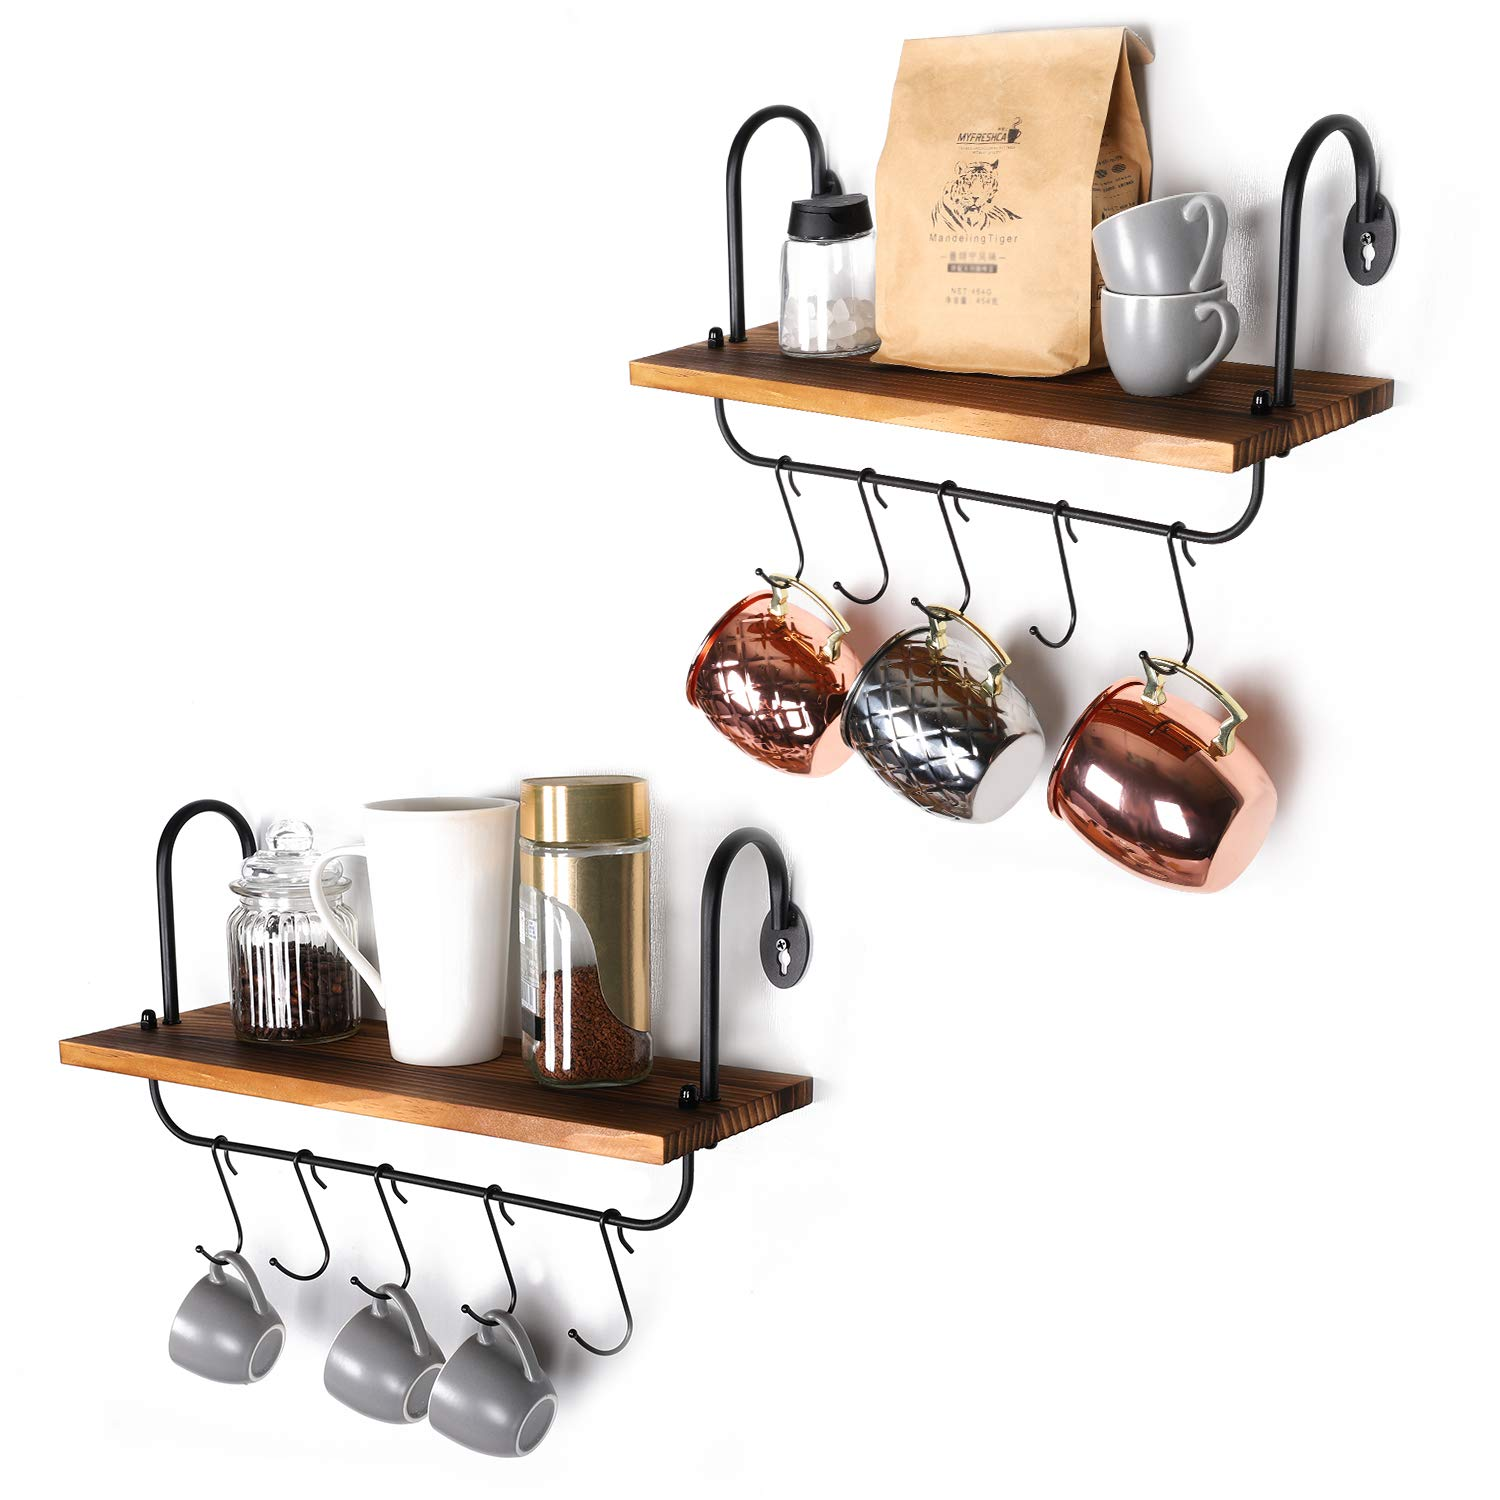 Olakee Wall Floating Shelves for Kitchen Bathroom Coffee Nook with 10 Adjustable Hooks for Mugs Cooking Utensils or Towel Rustic Storage Shelves Set of 2